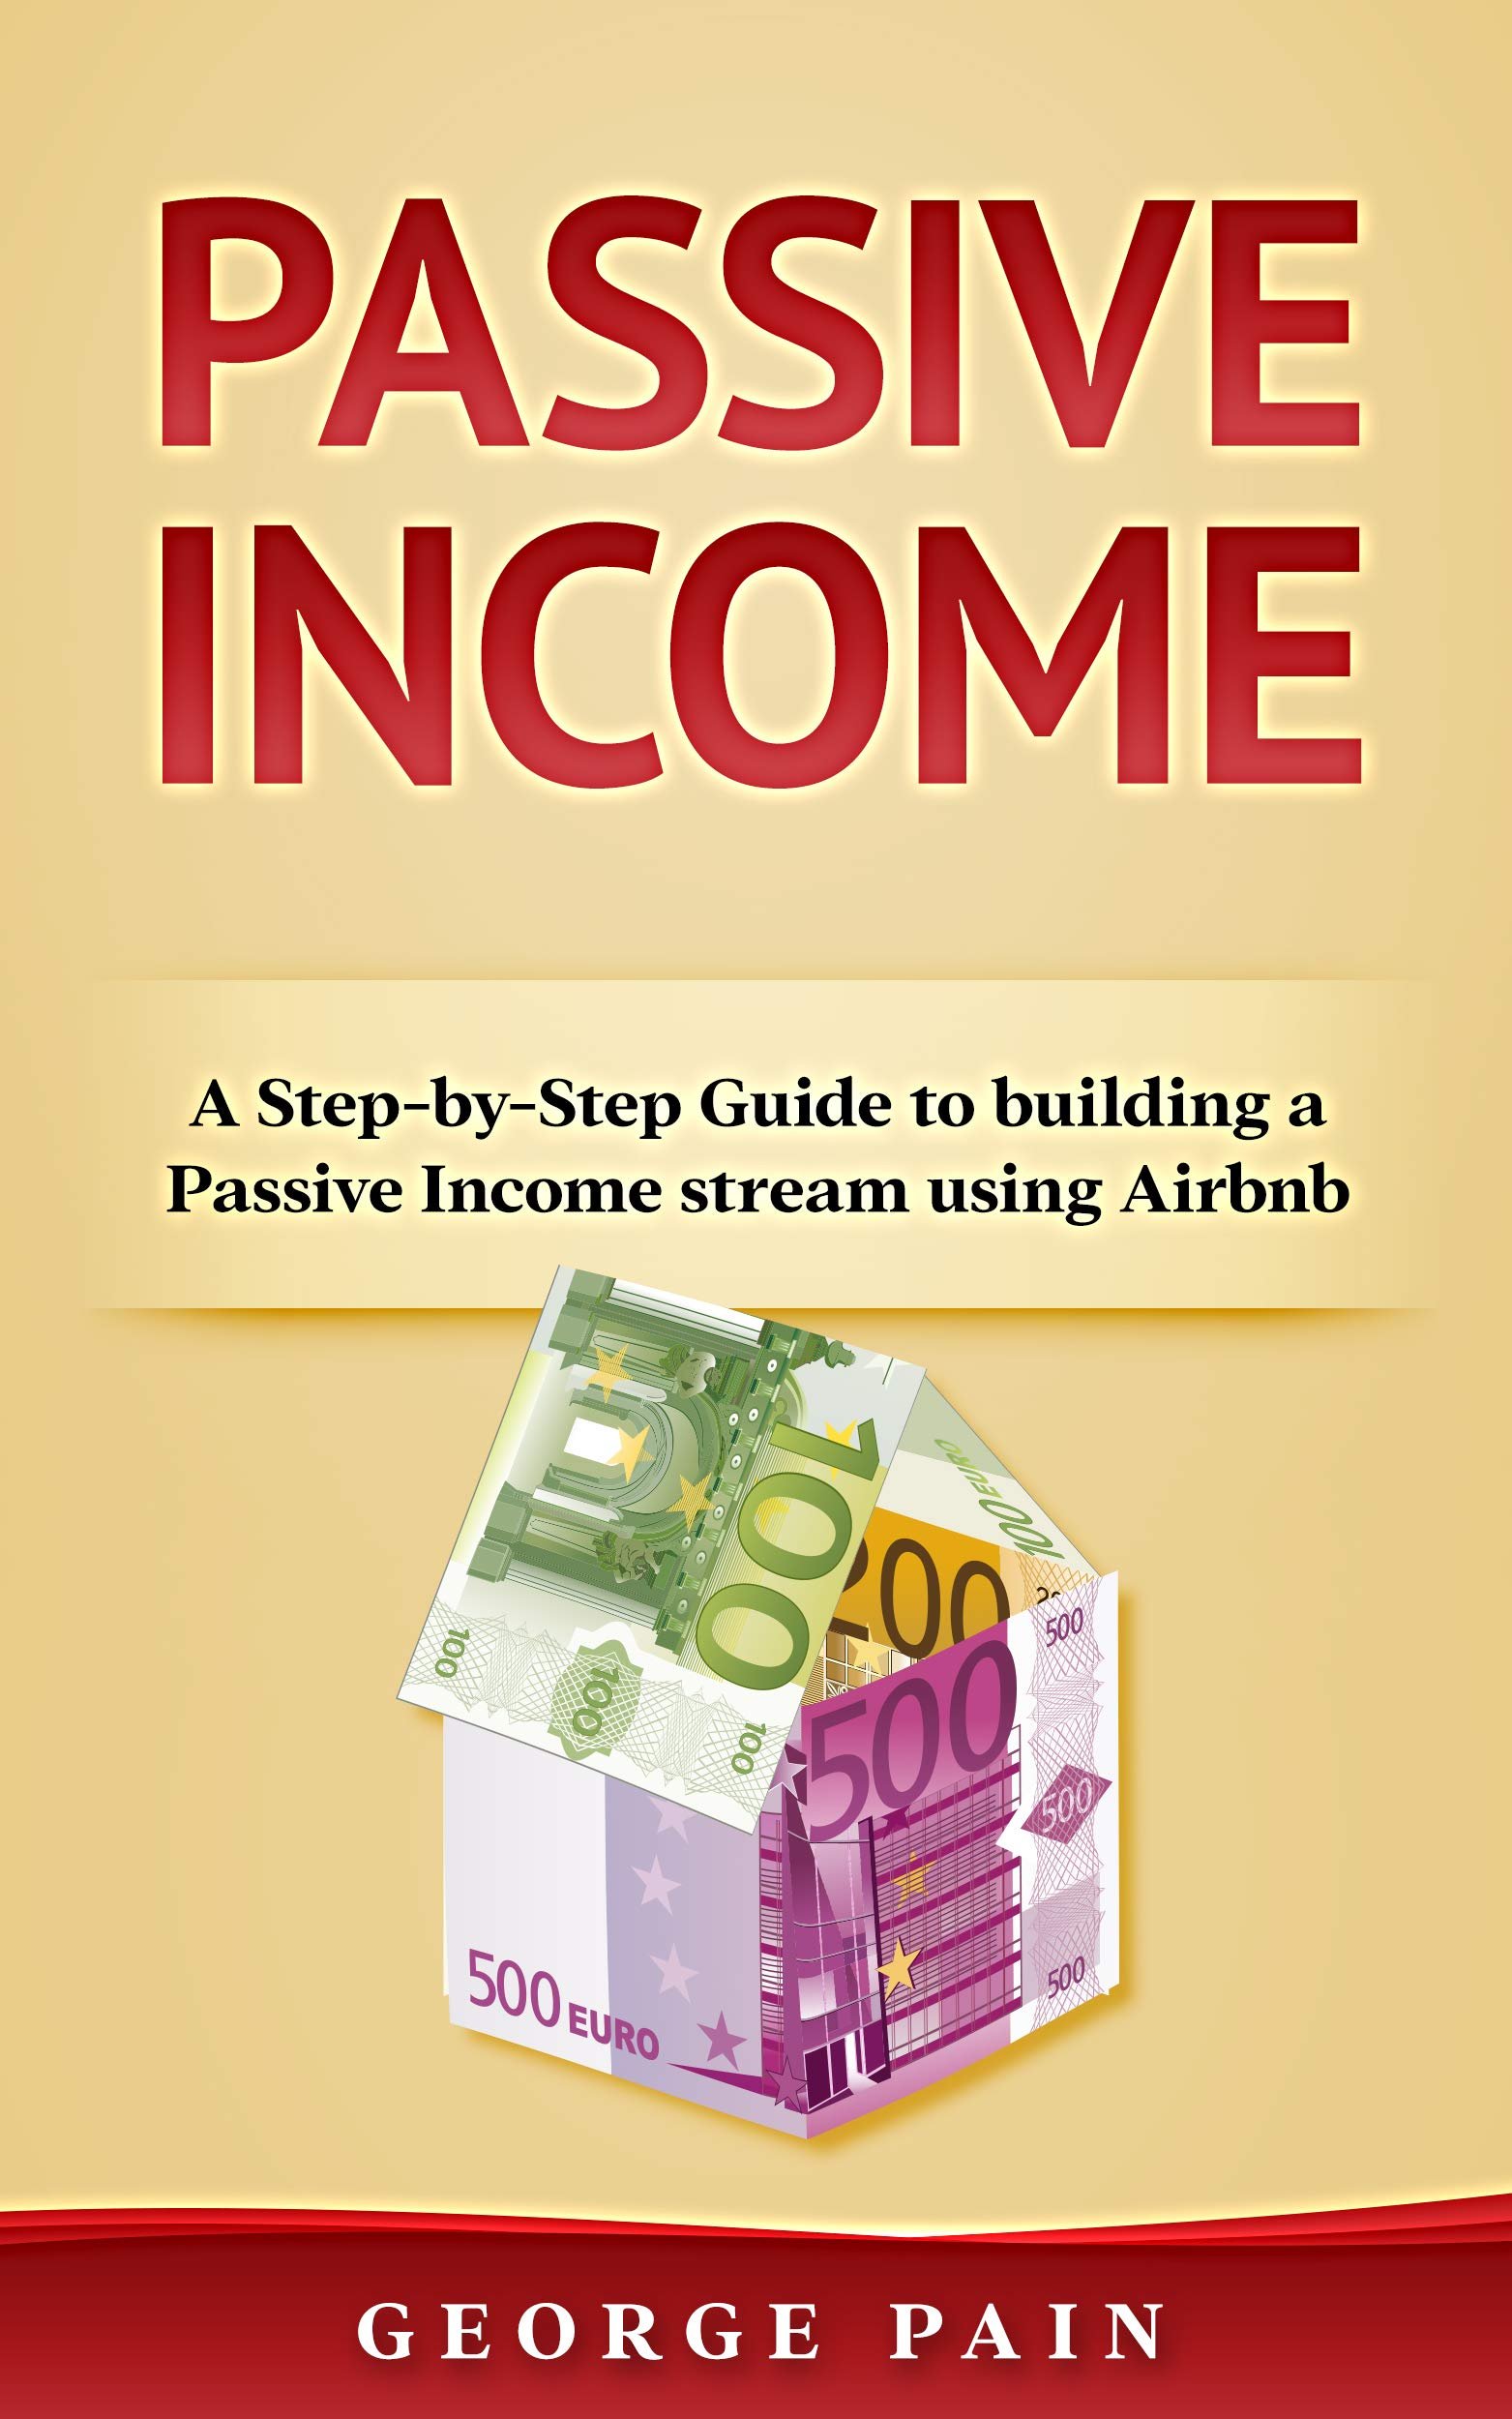 Passive Income: A Step-by-Step Guide to building a Passive Income stream using Airbnb